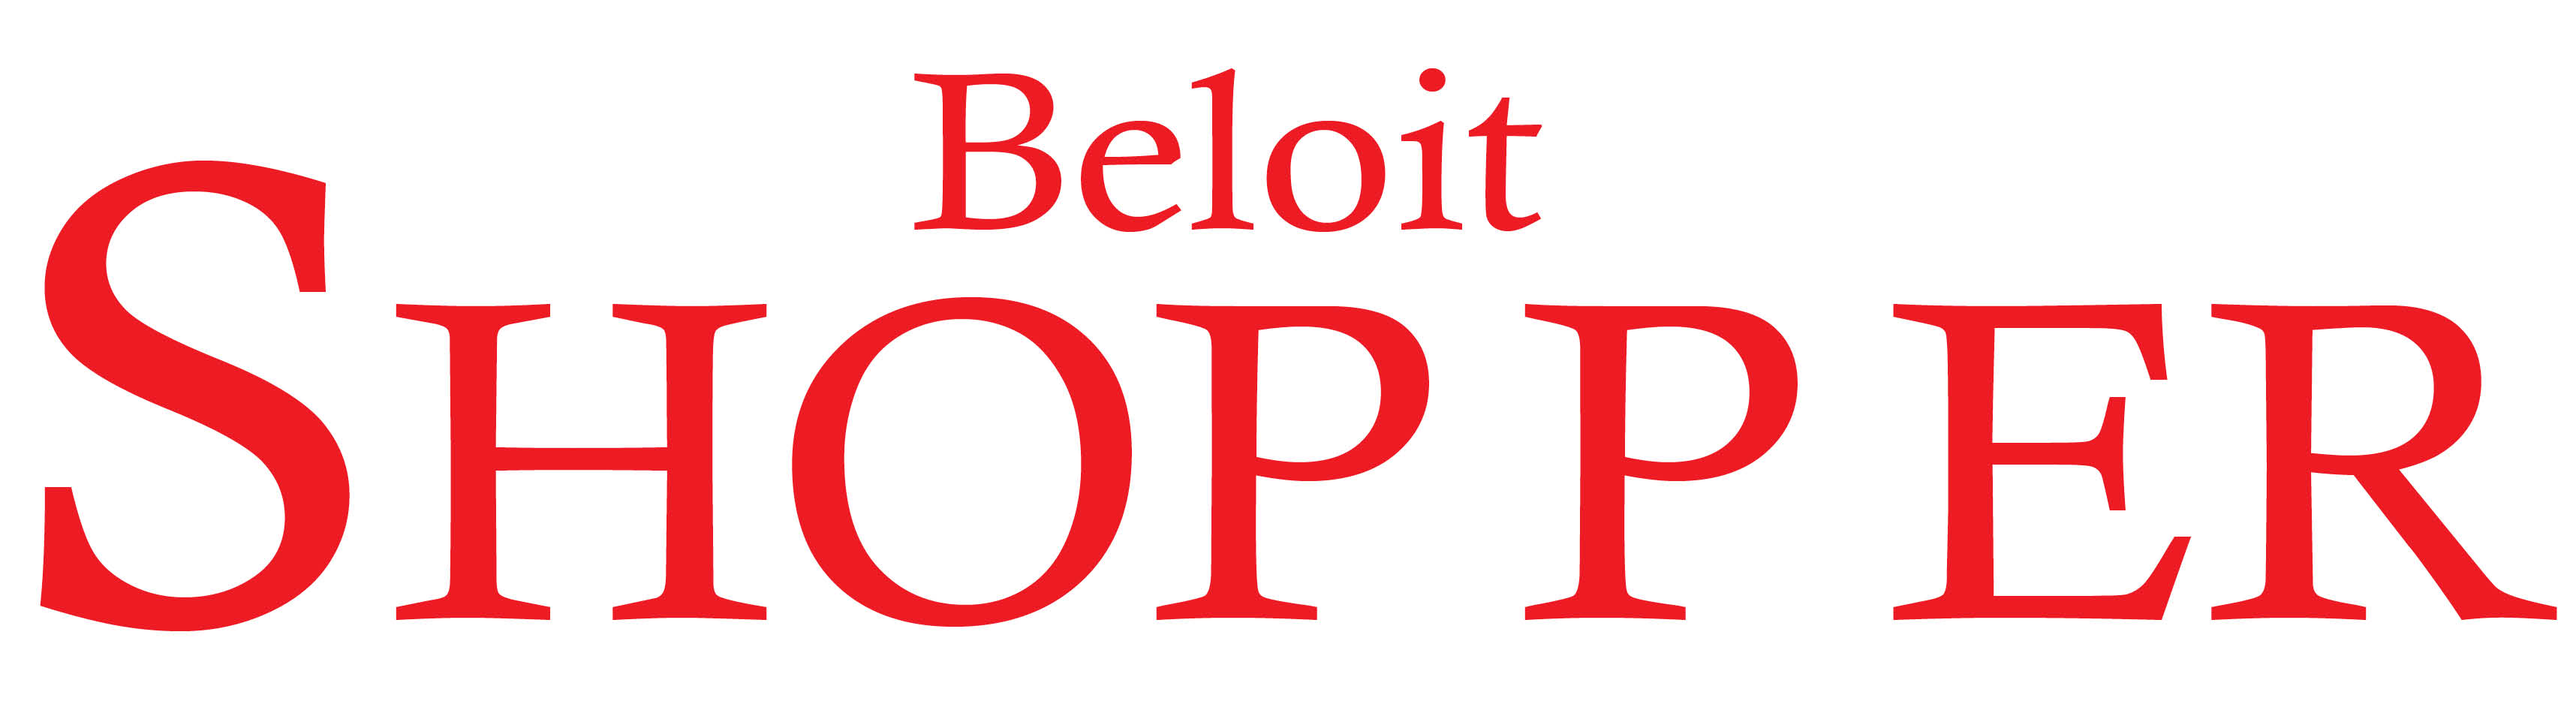 4/27/16 Beloit Shopper